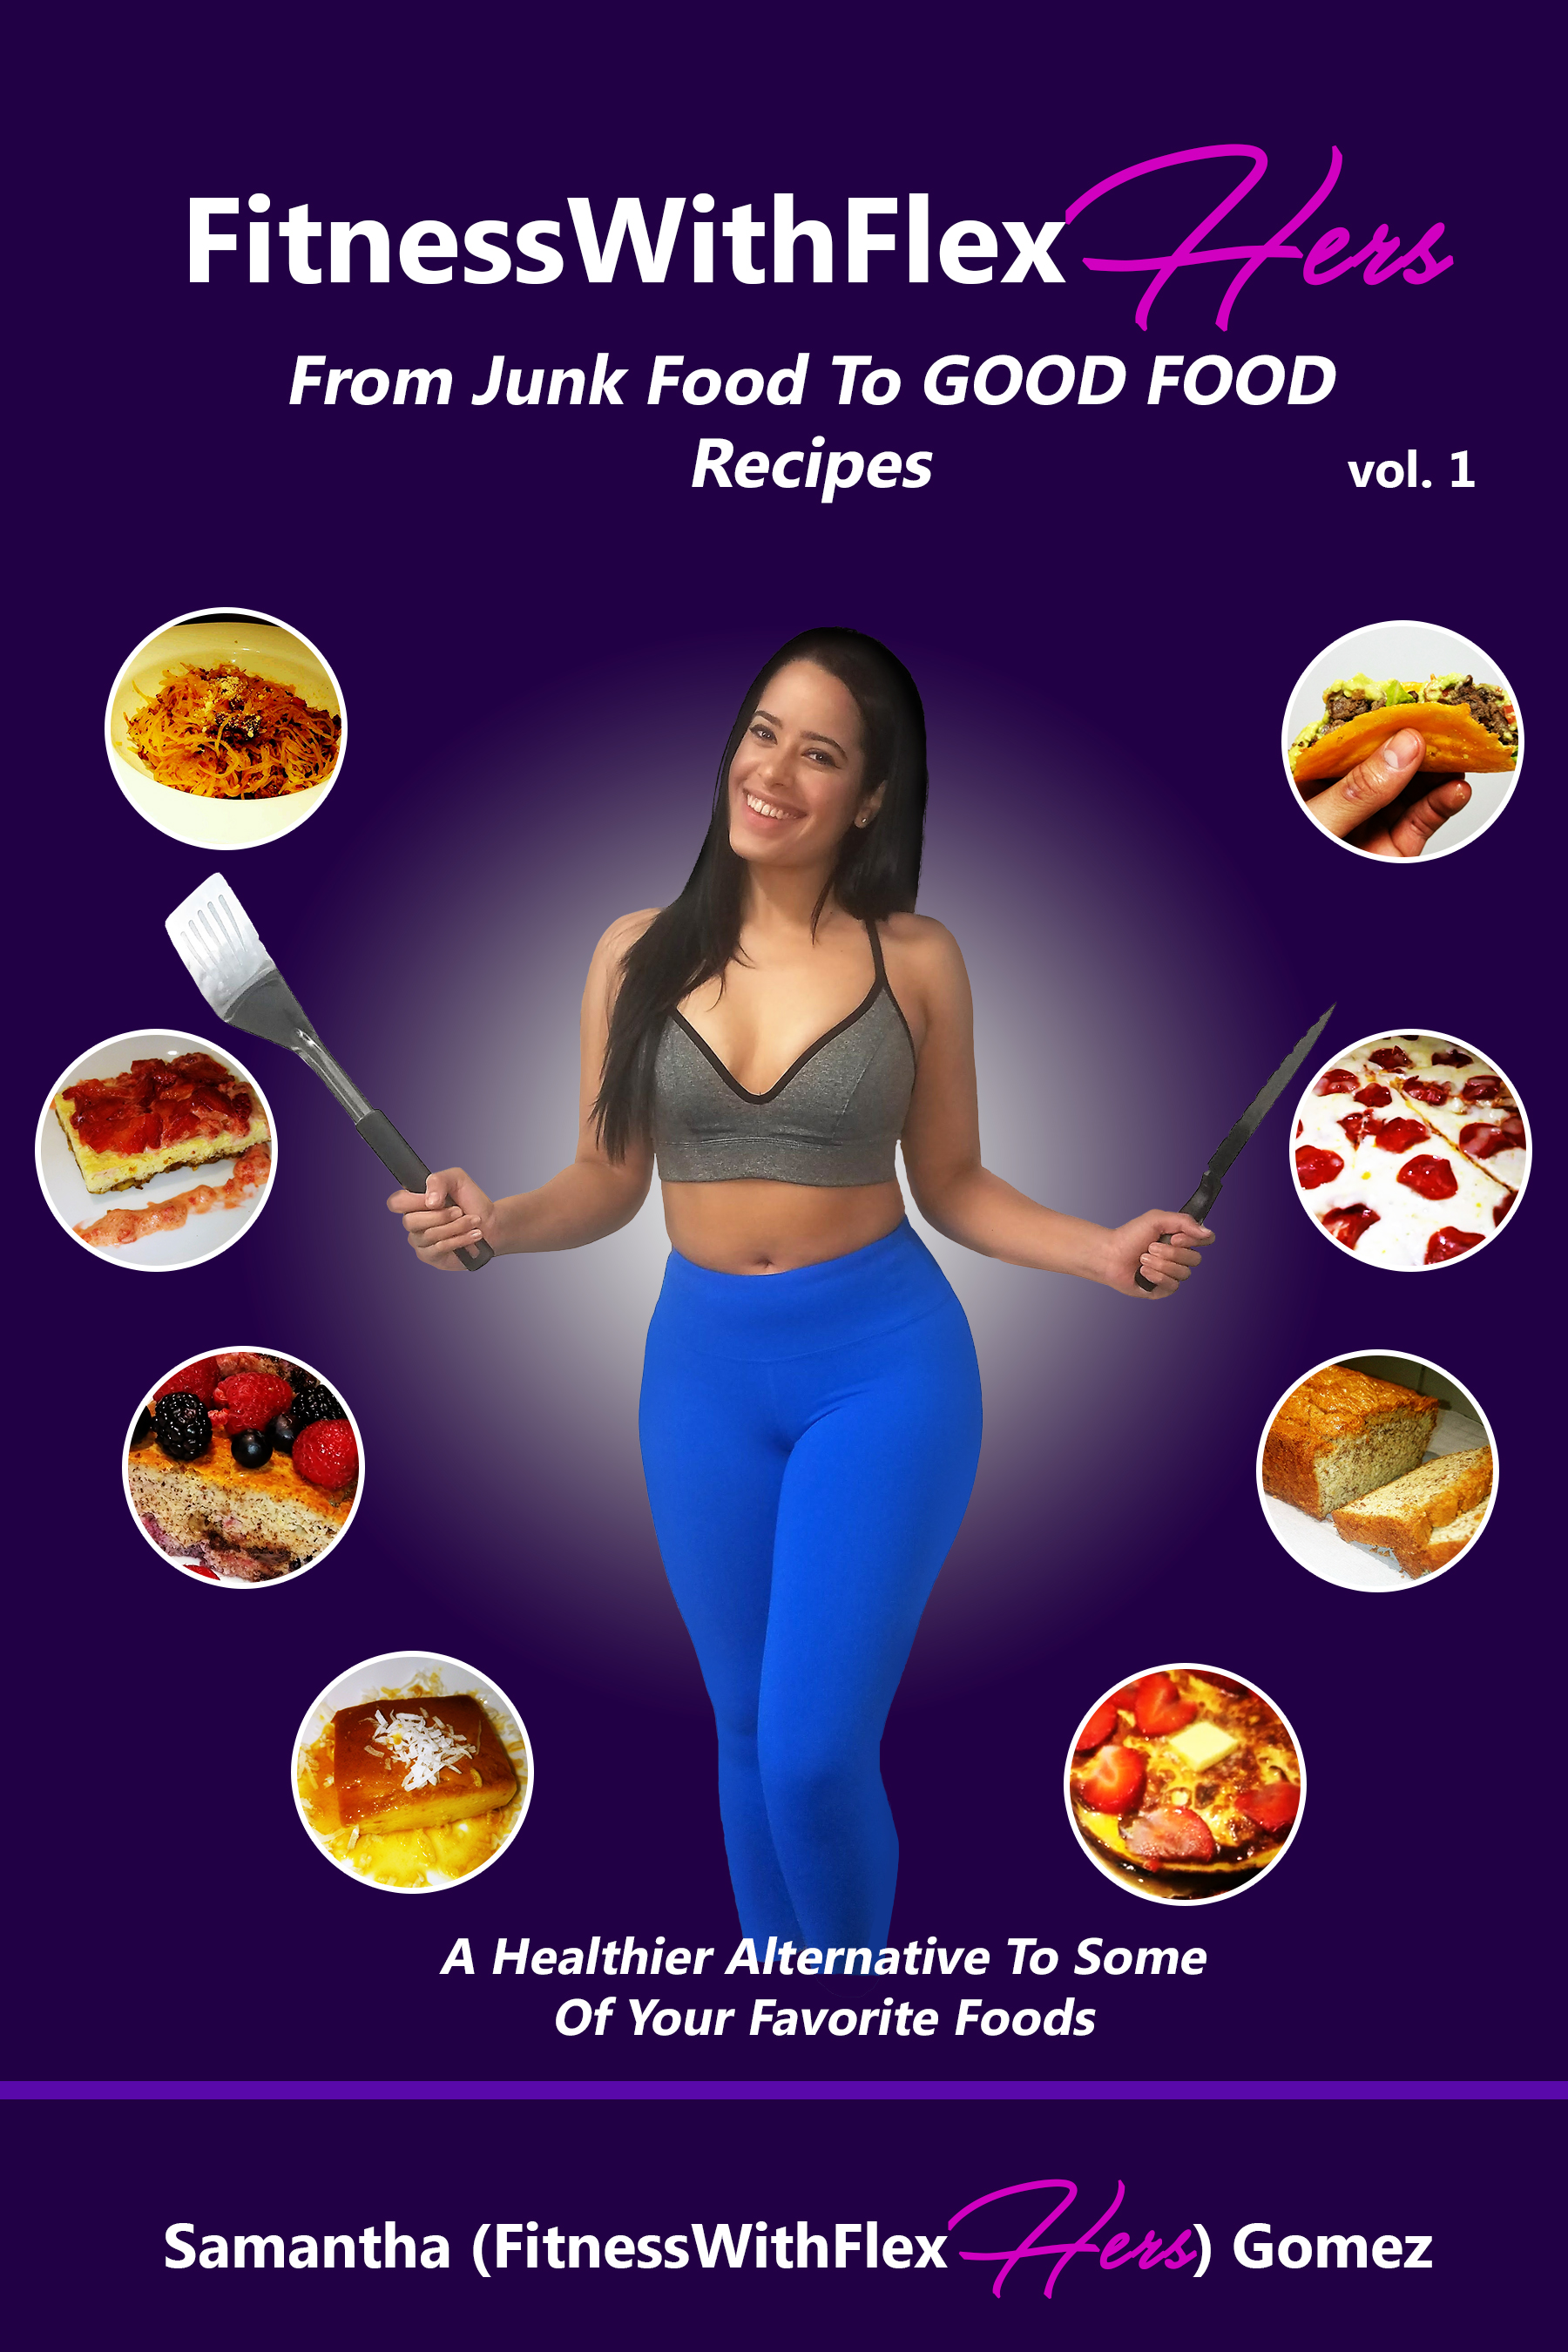 From Junk Food To GOOD FOOD Recipes